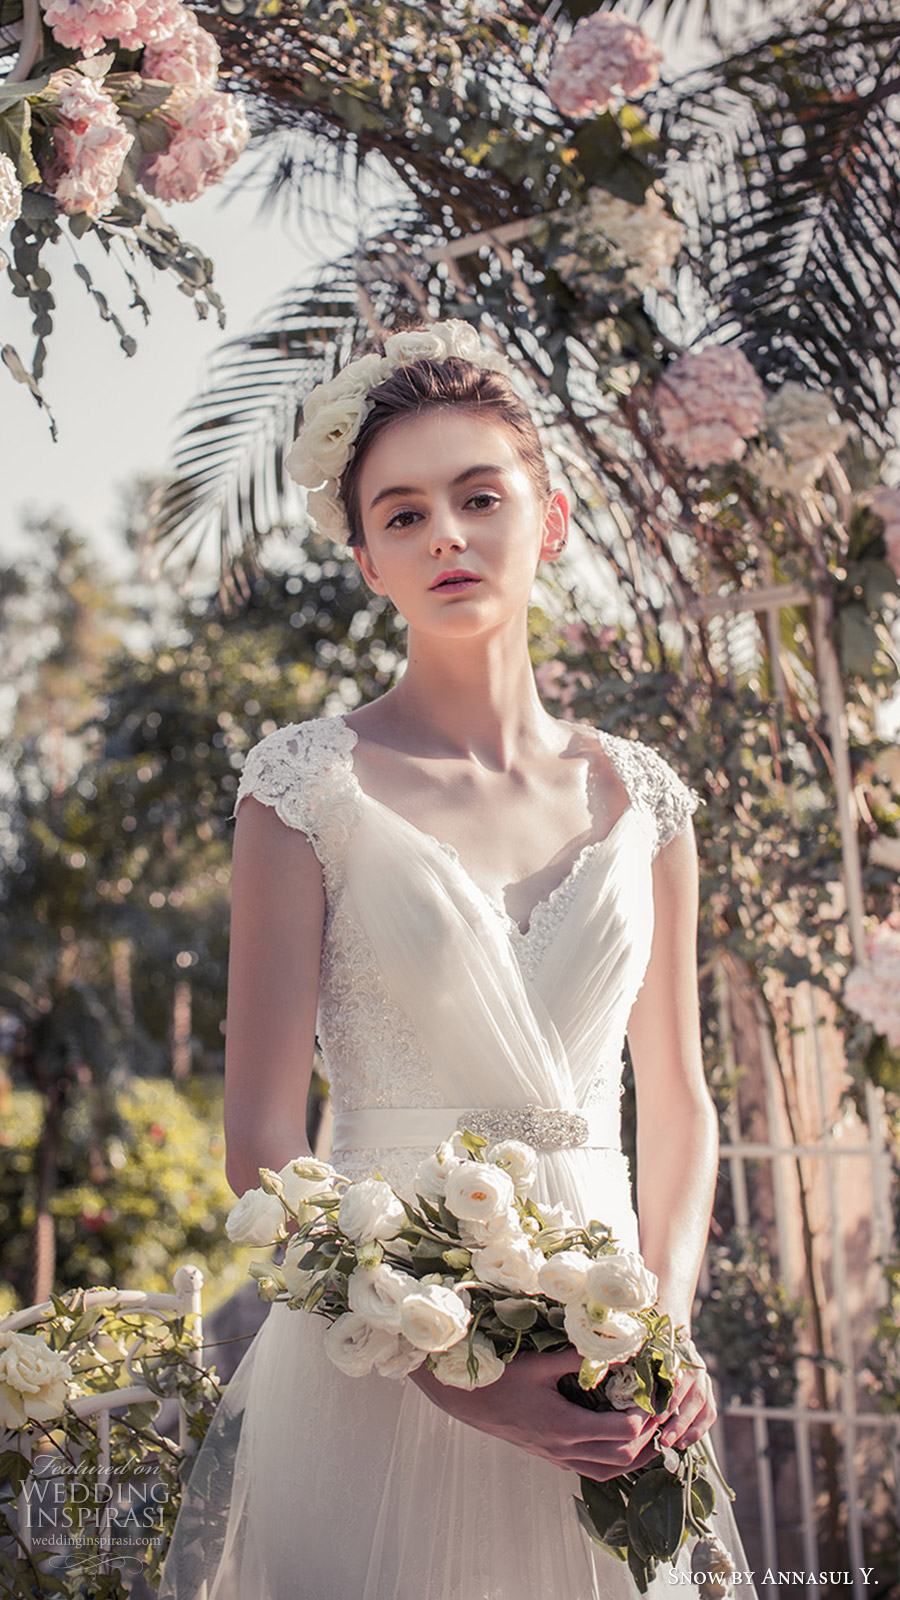 snow annasul y 2017 bridal (sa3350b) lace cap sleeves sweetheart surplice pleated bodice a line wedding dress zv